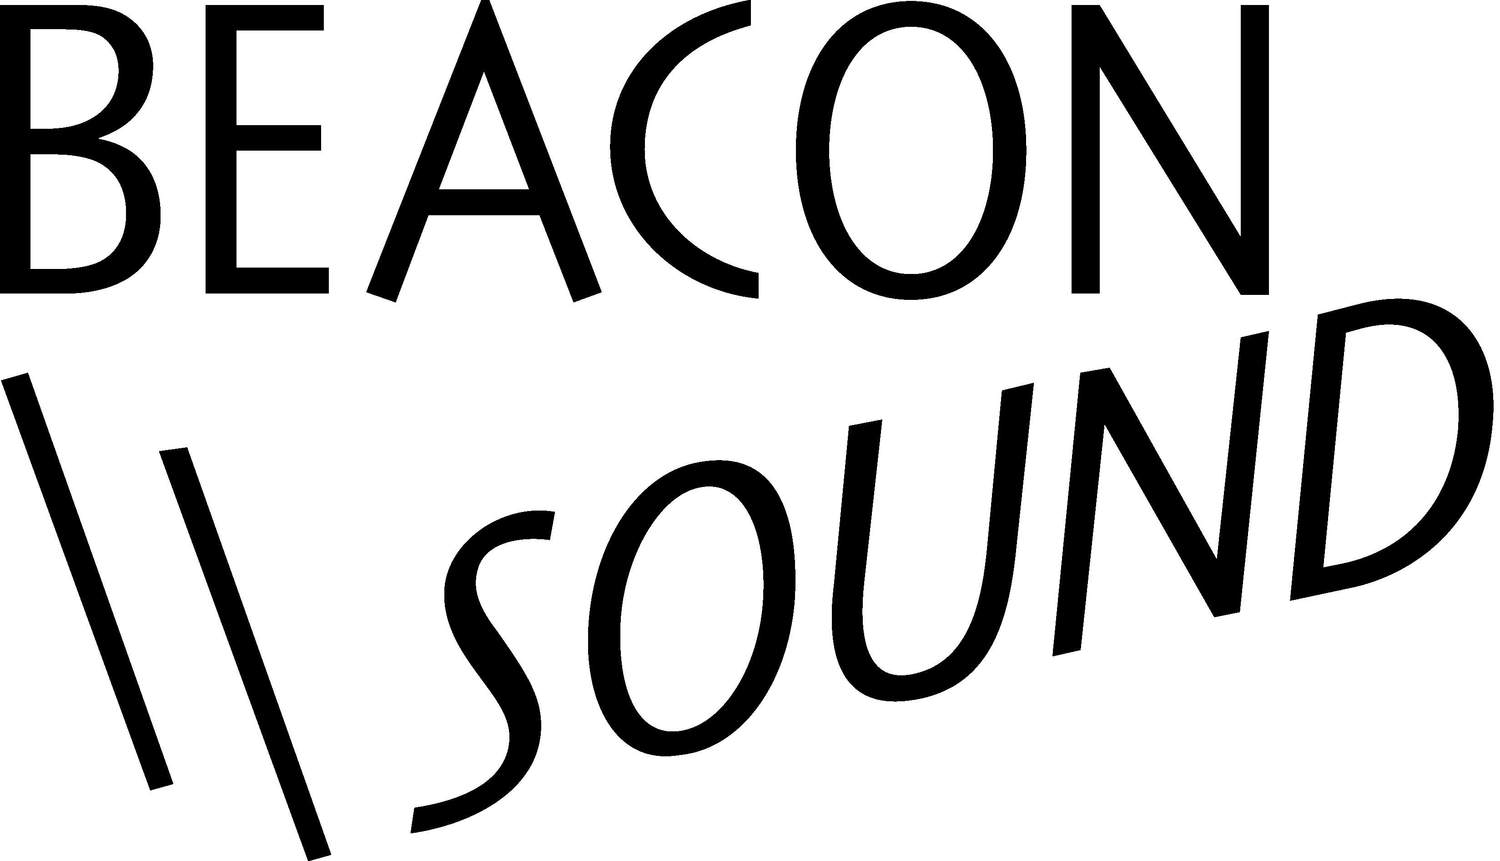 Beacon Sound